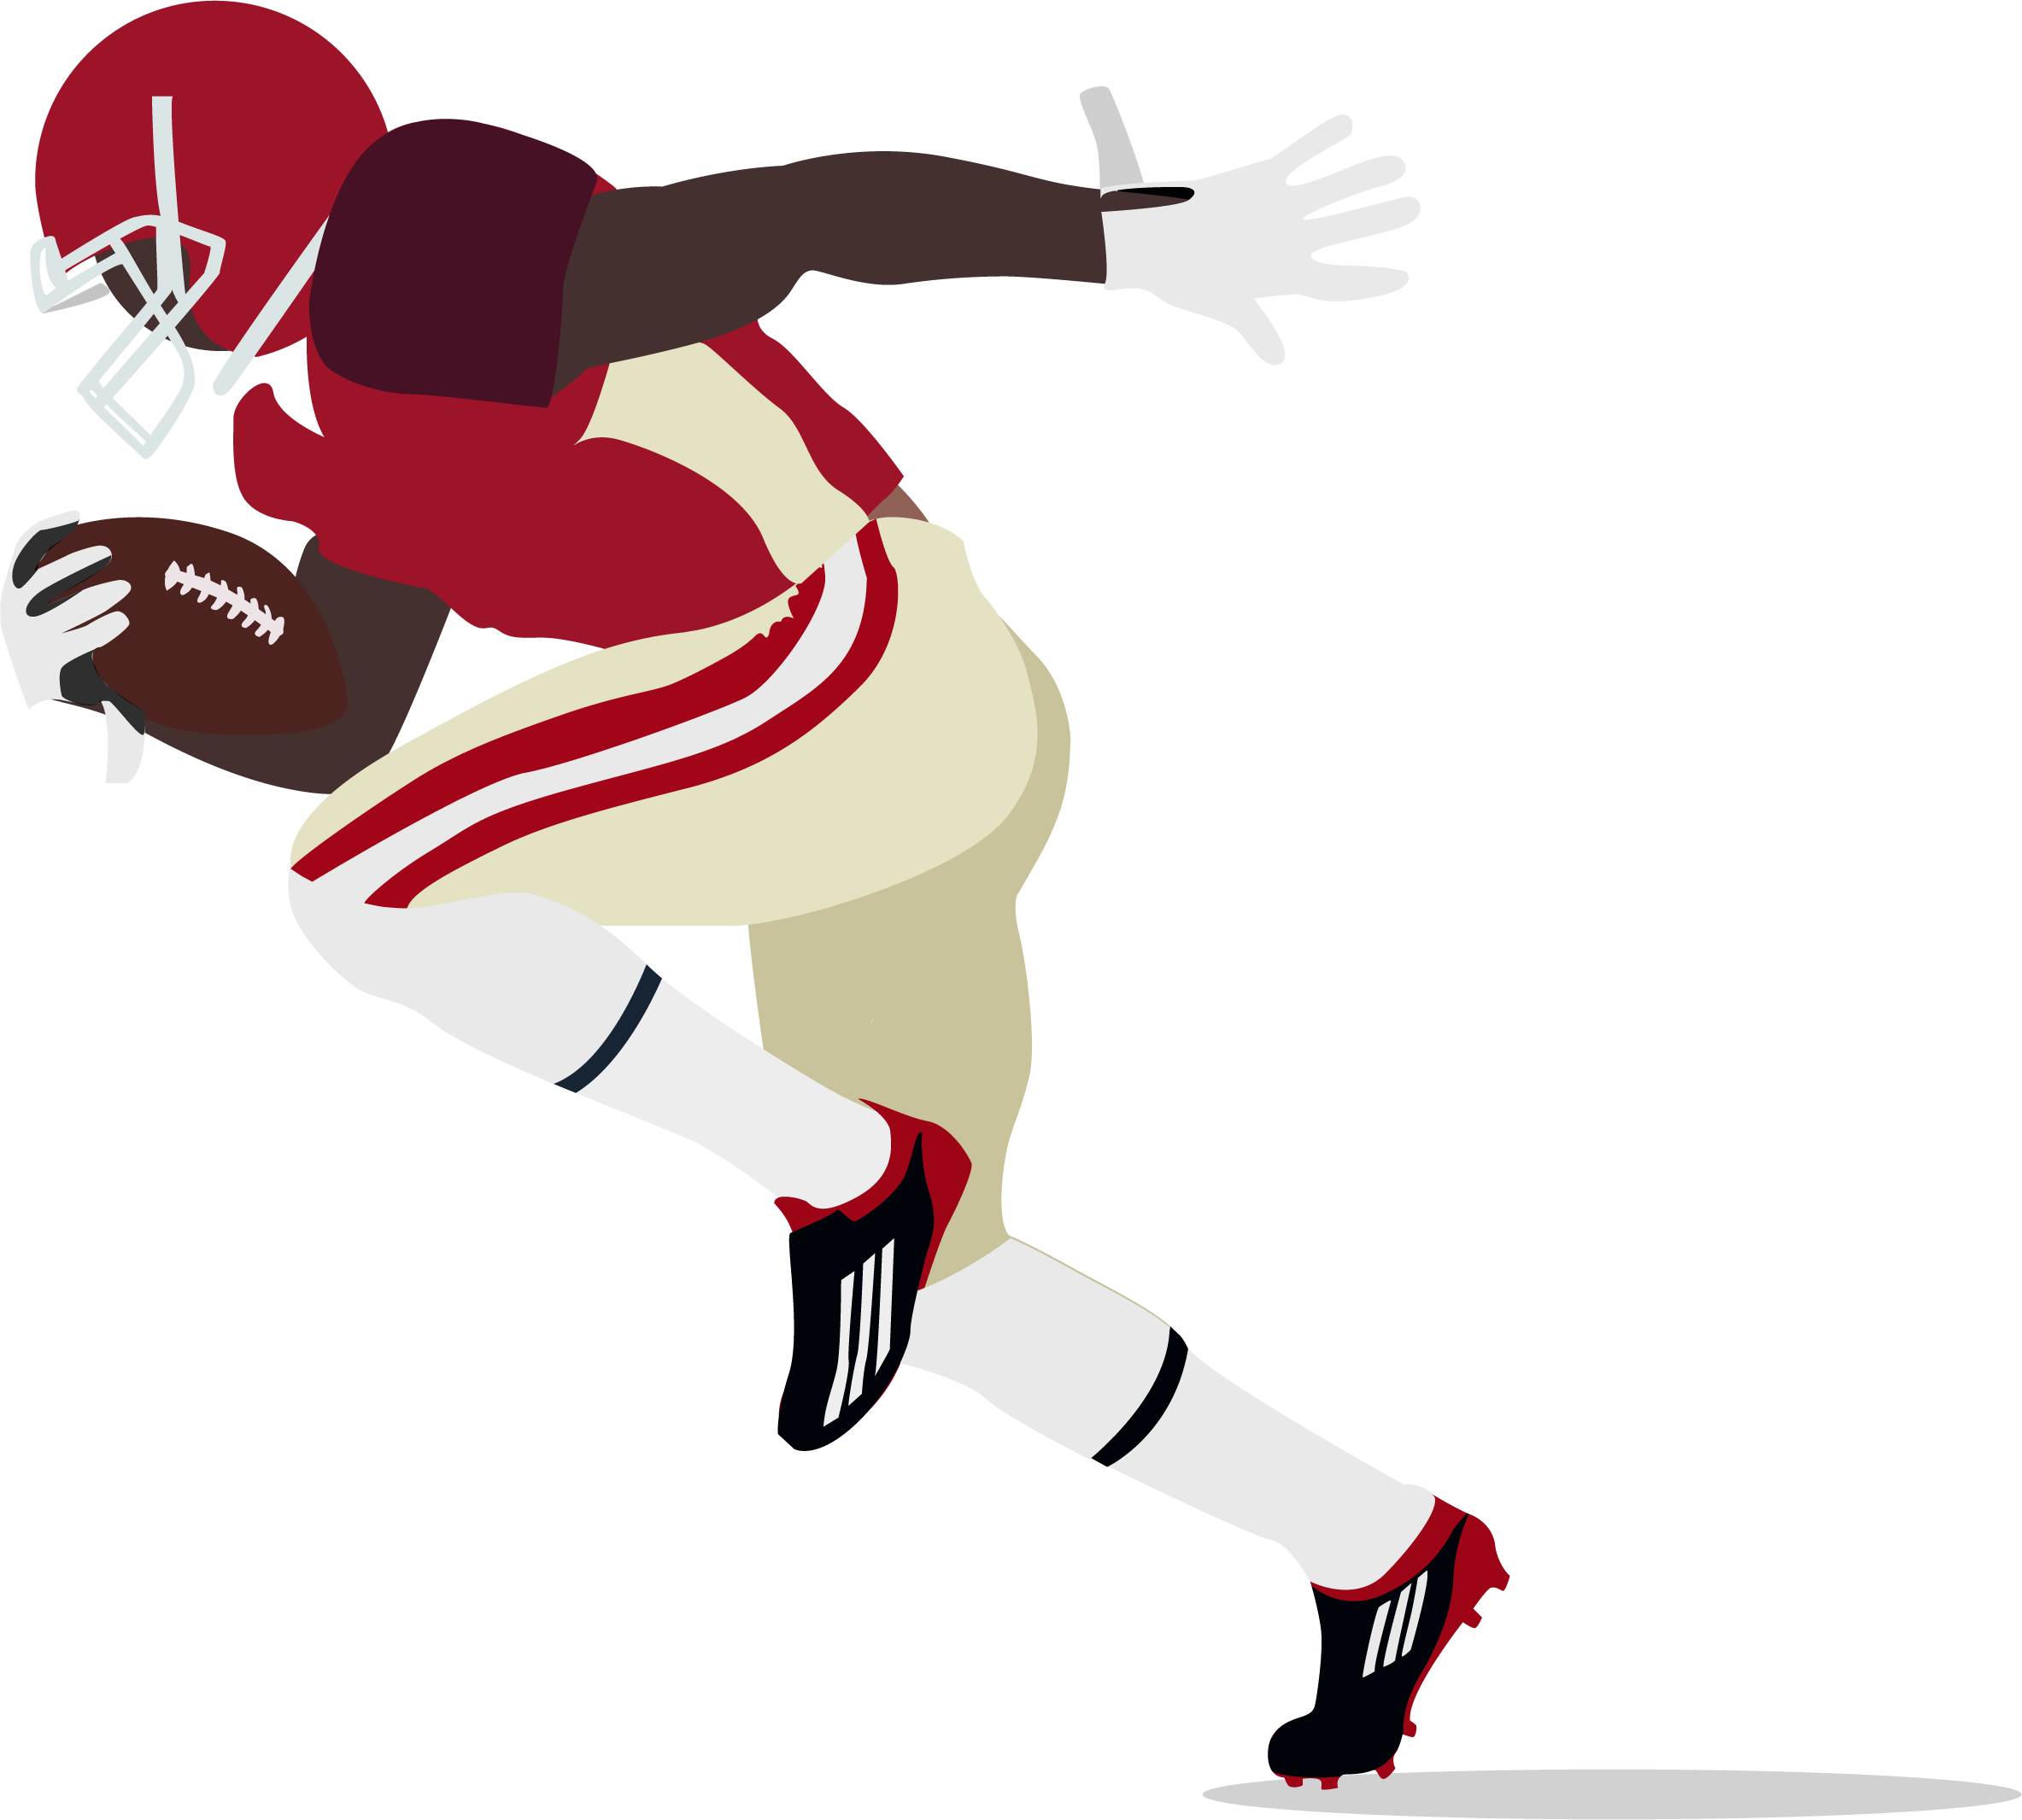 Clipart of a coach grabbing a football player